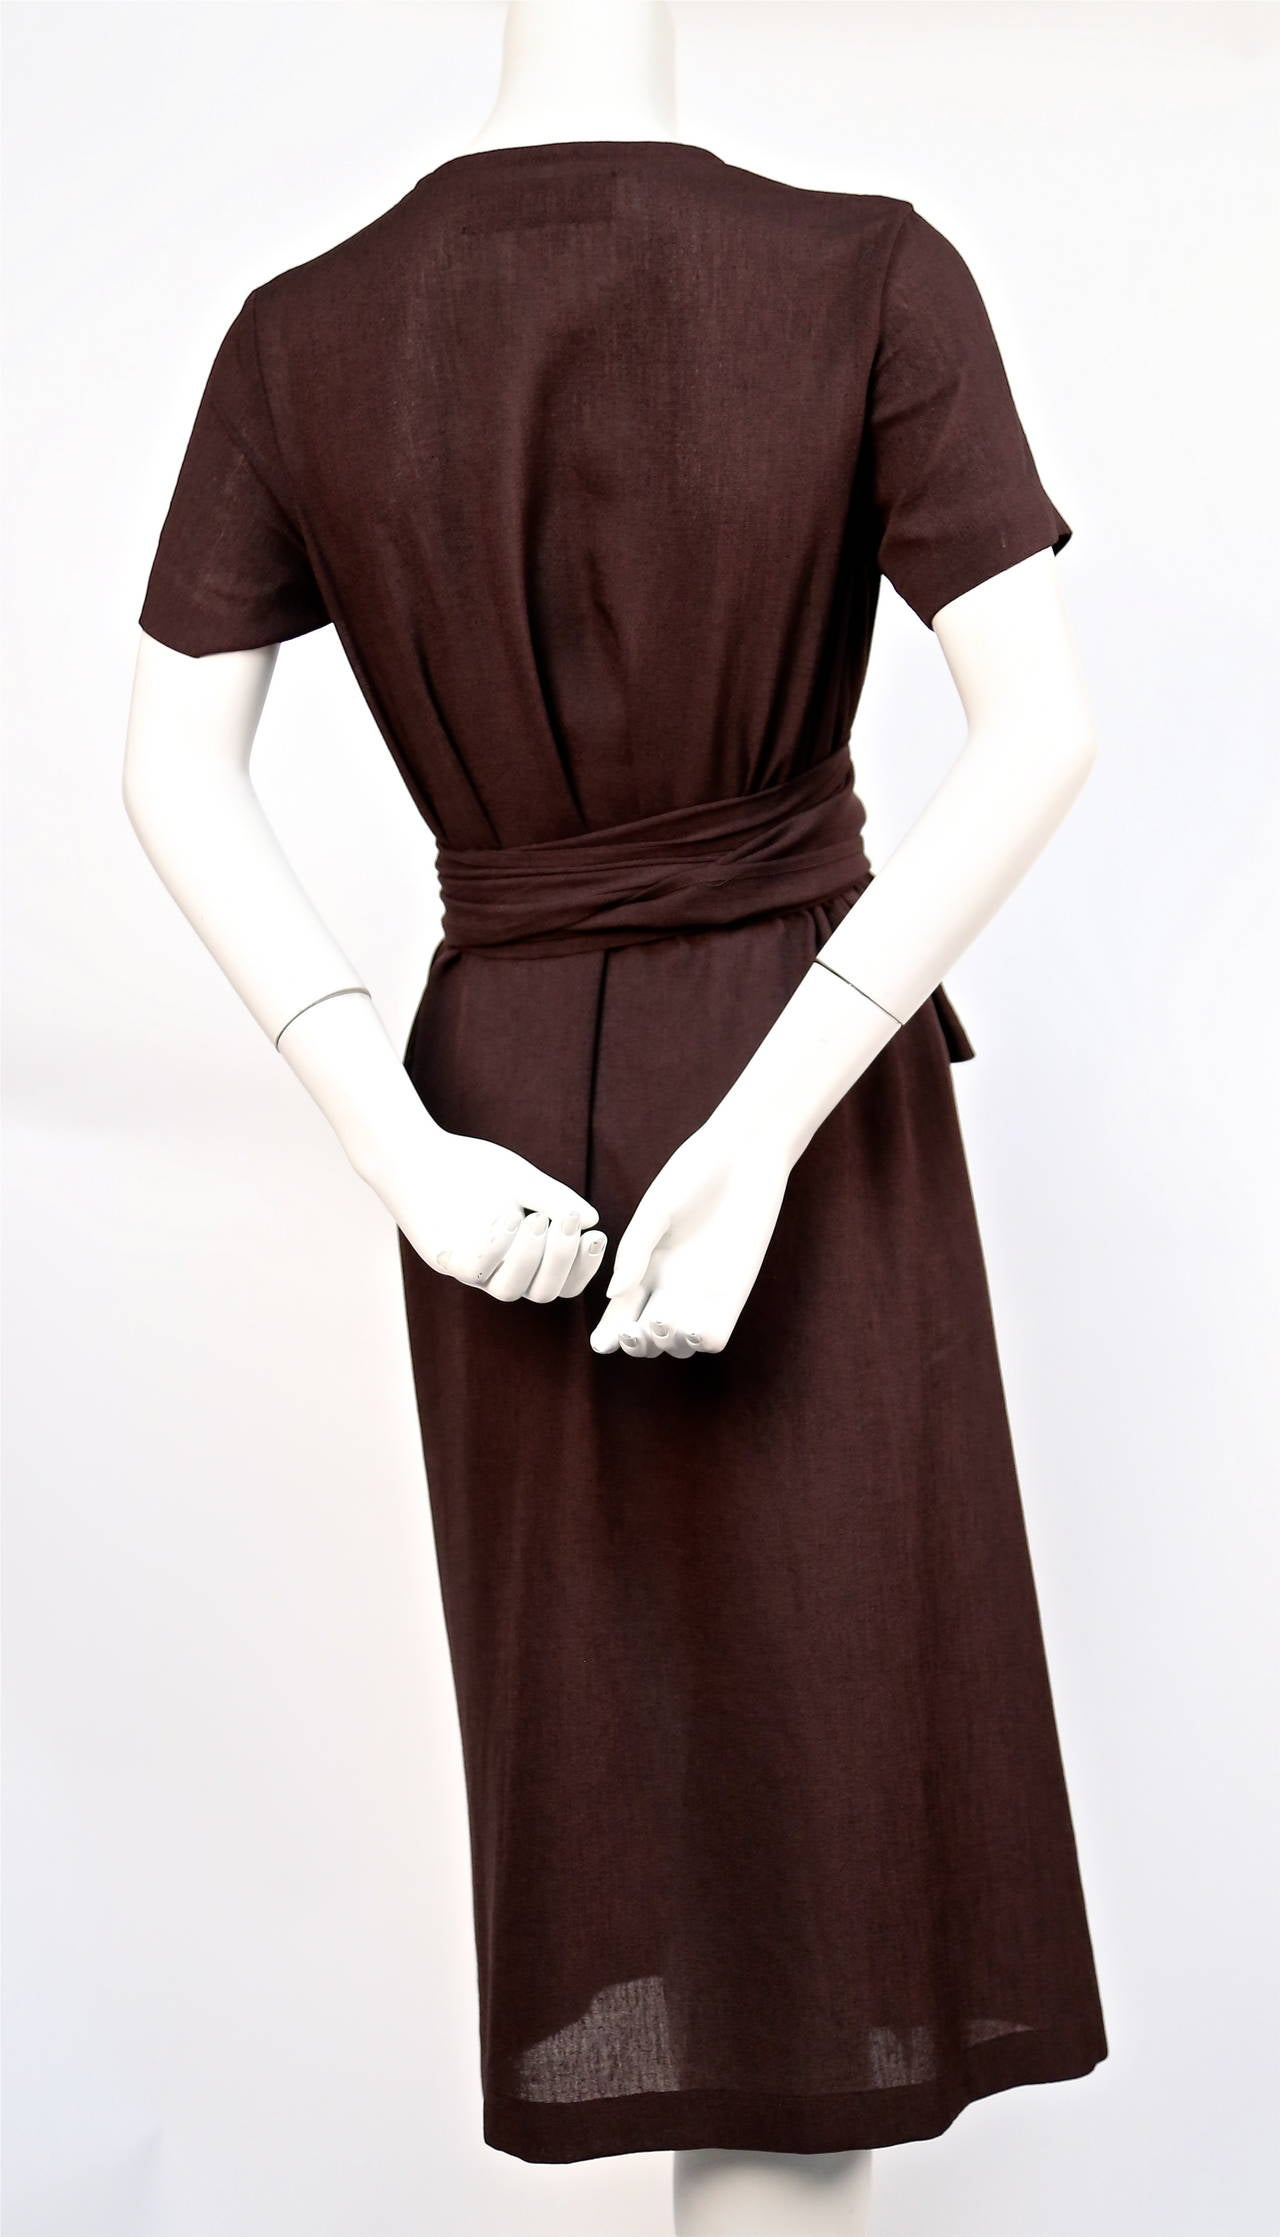 1997 COMME DES GARCONS brown draped dress with wrap waist In Excellent Condition For Sale In San Fransisco, CA